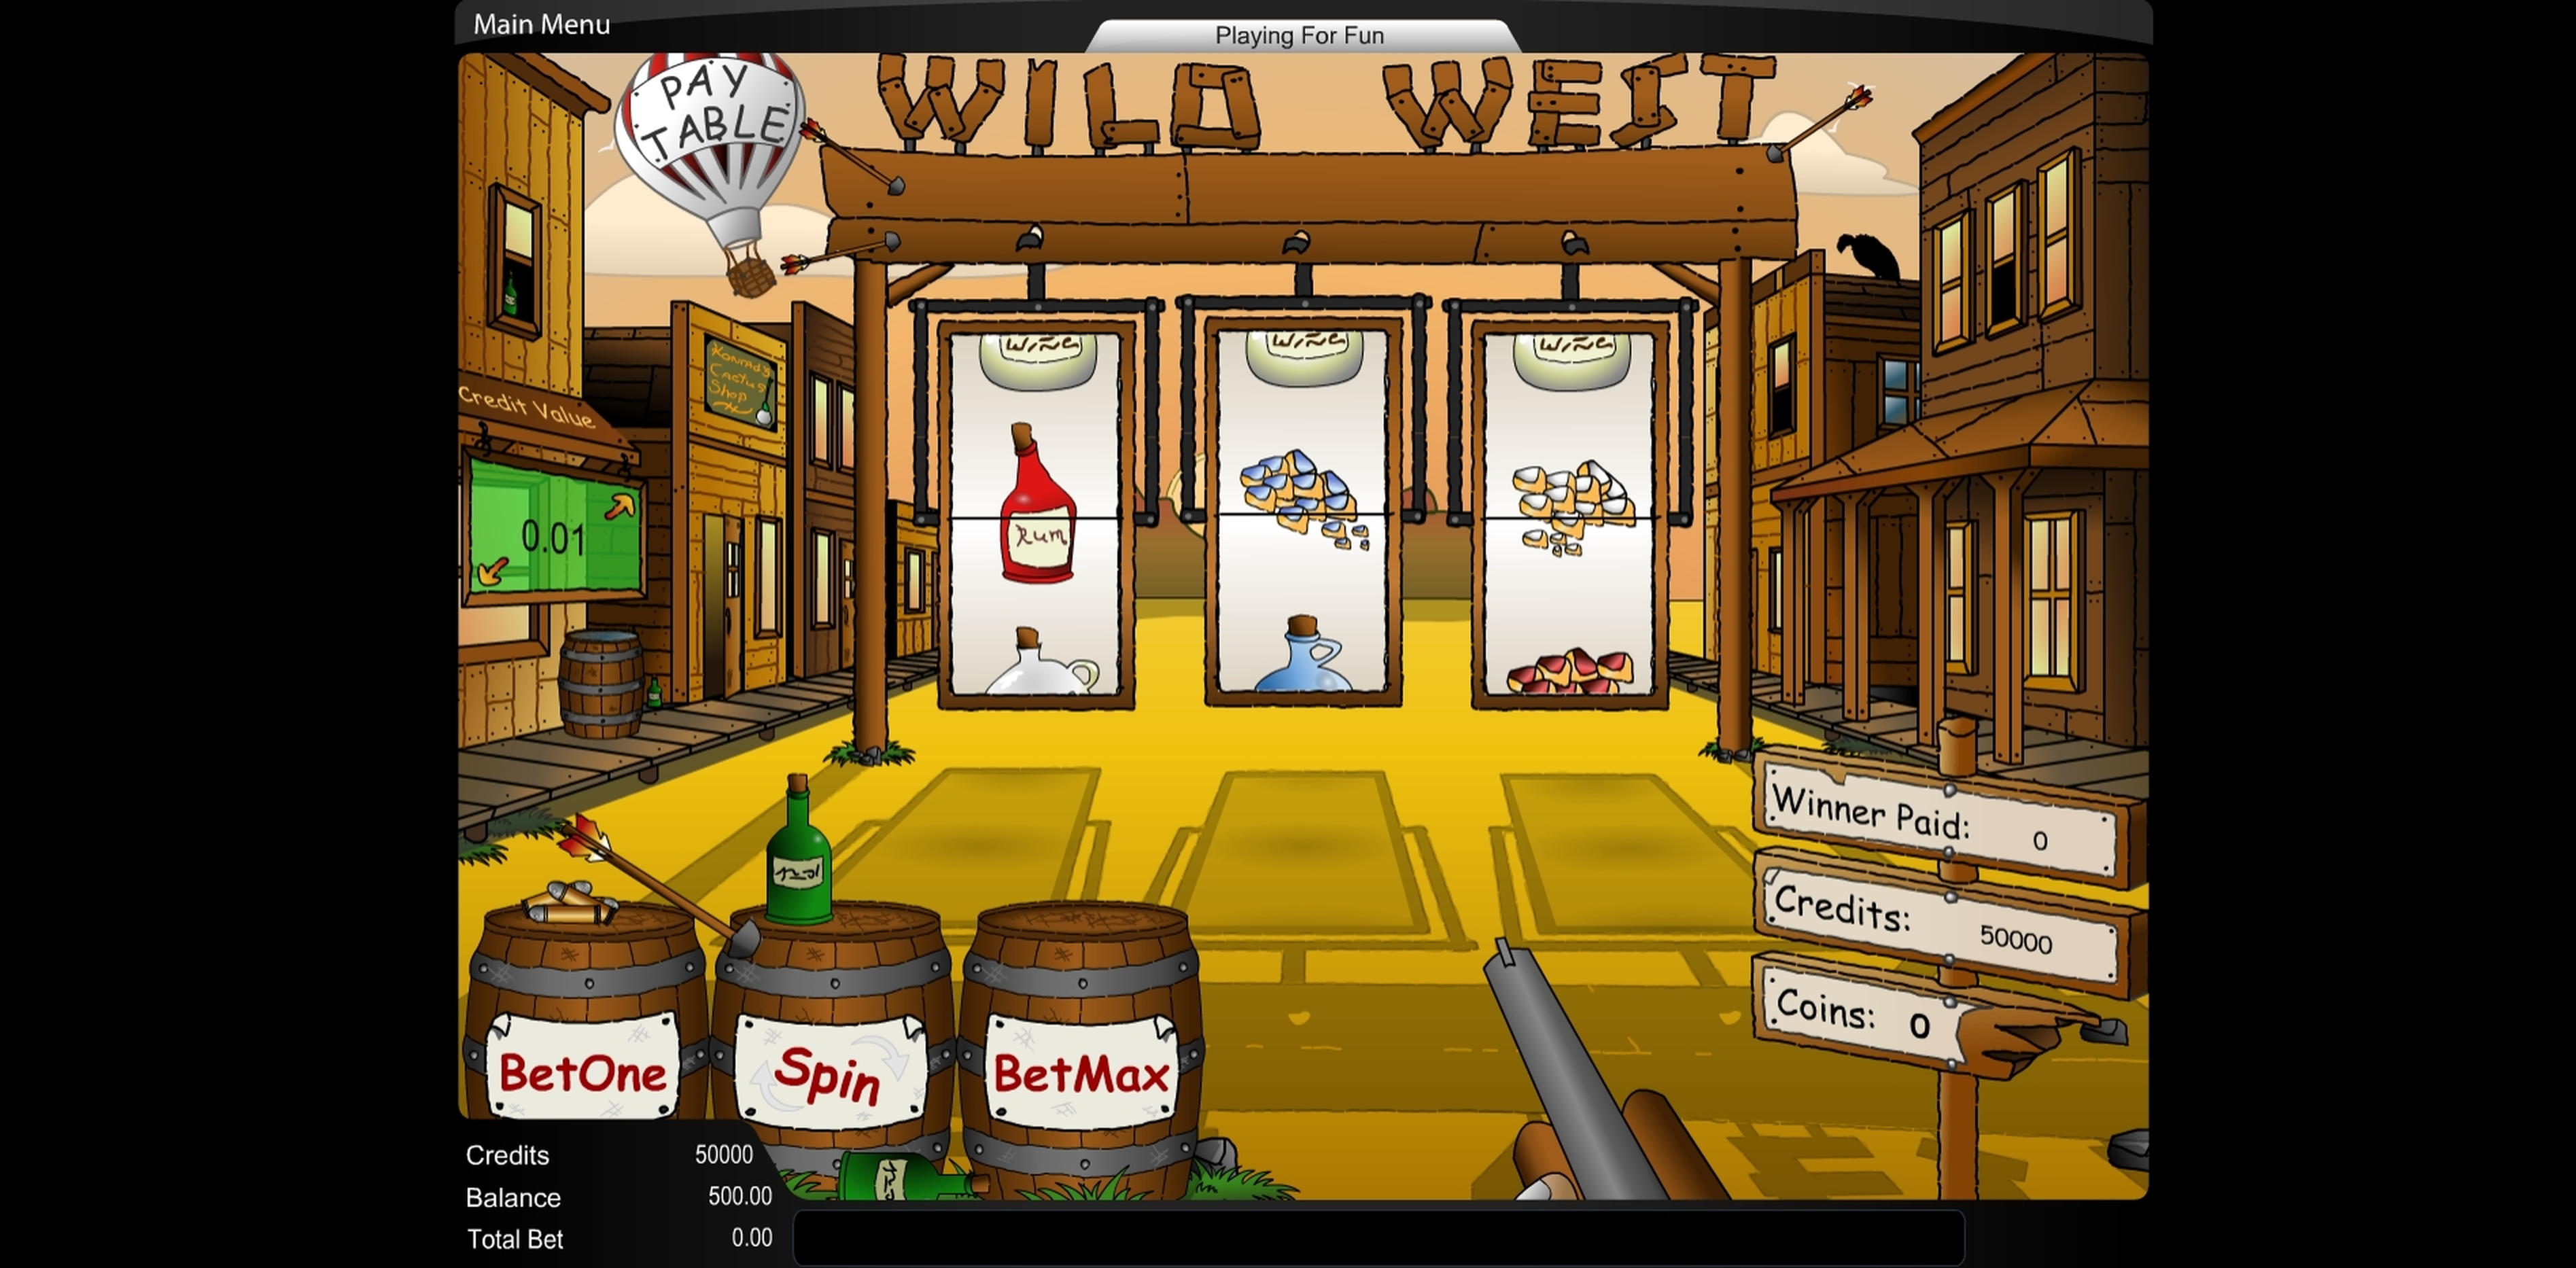 Reels in Wild West (TOP TREND GAMING) Slot Game by Top Trend Gaming